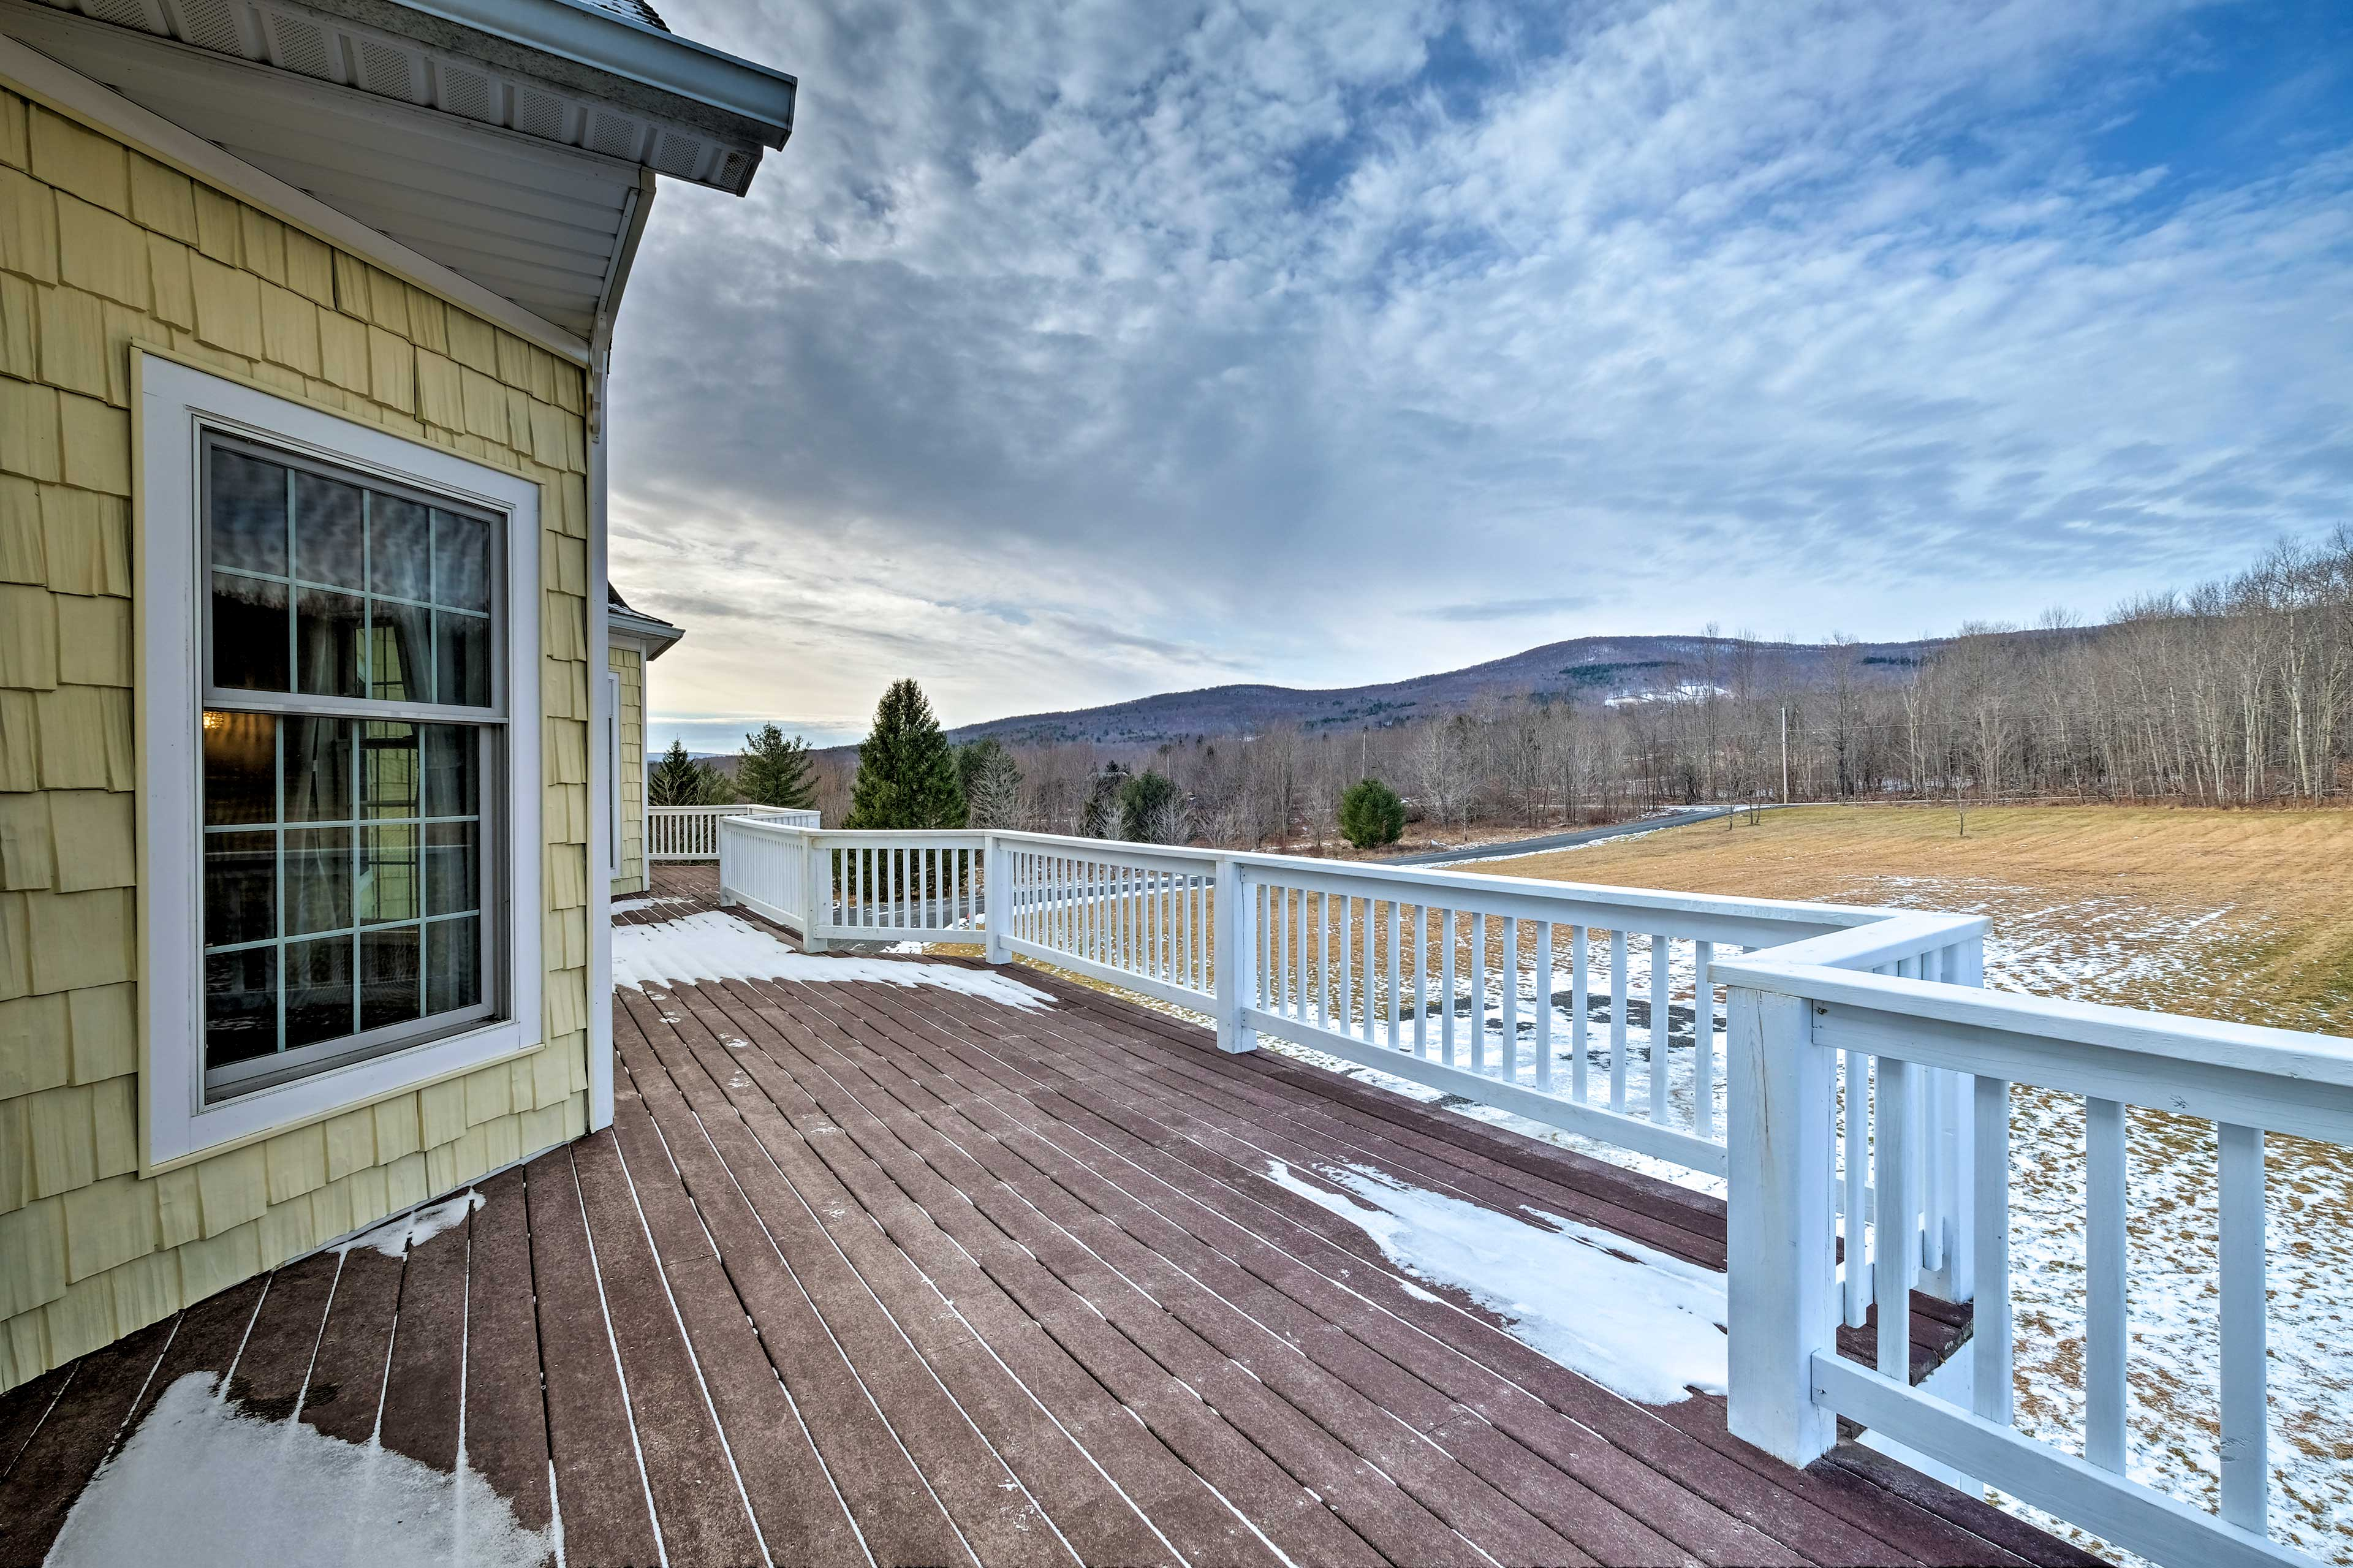 You can see the Catskill Mountains from the manor's deck!